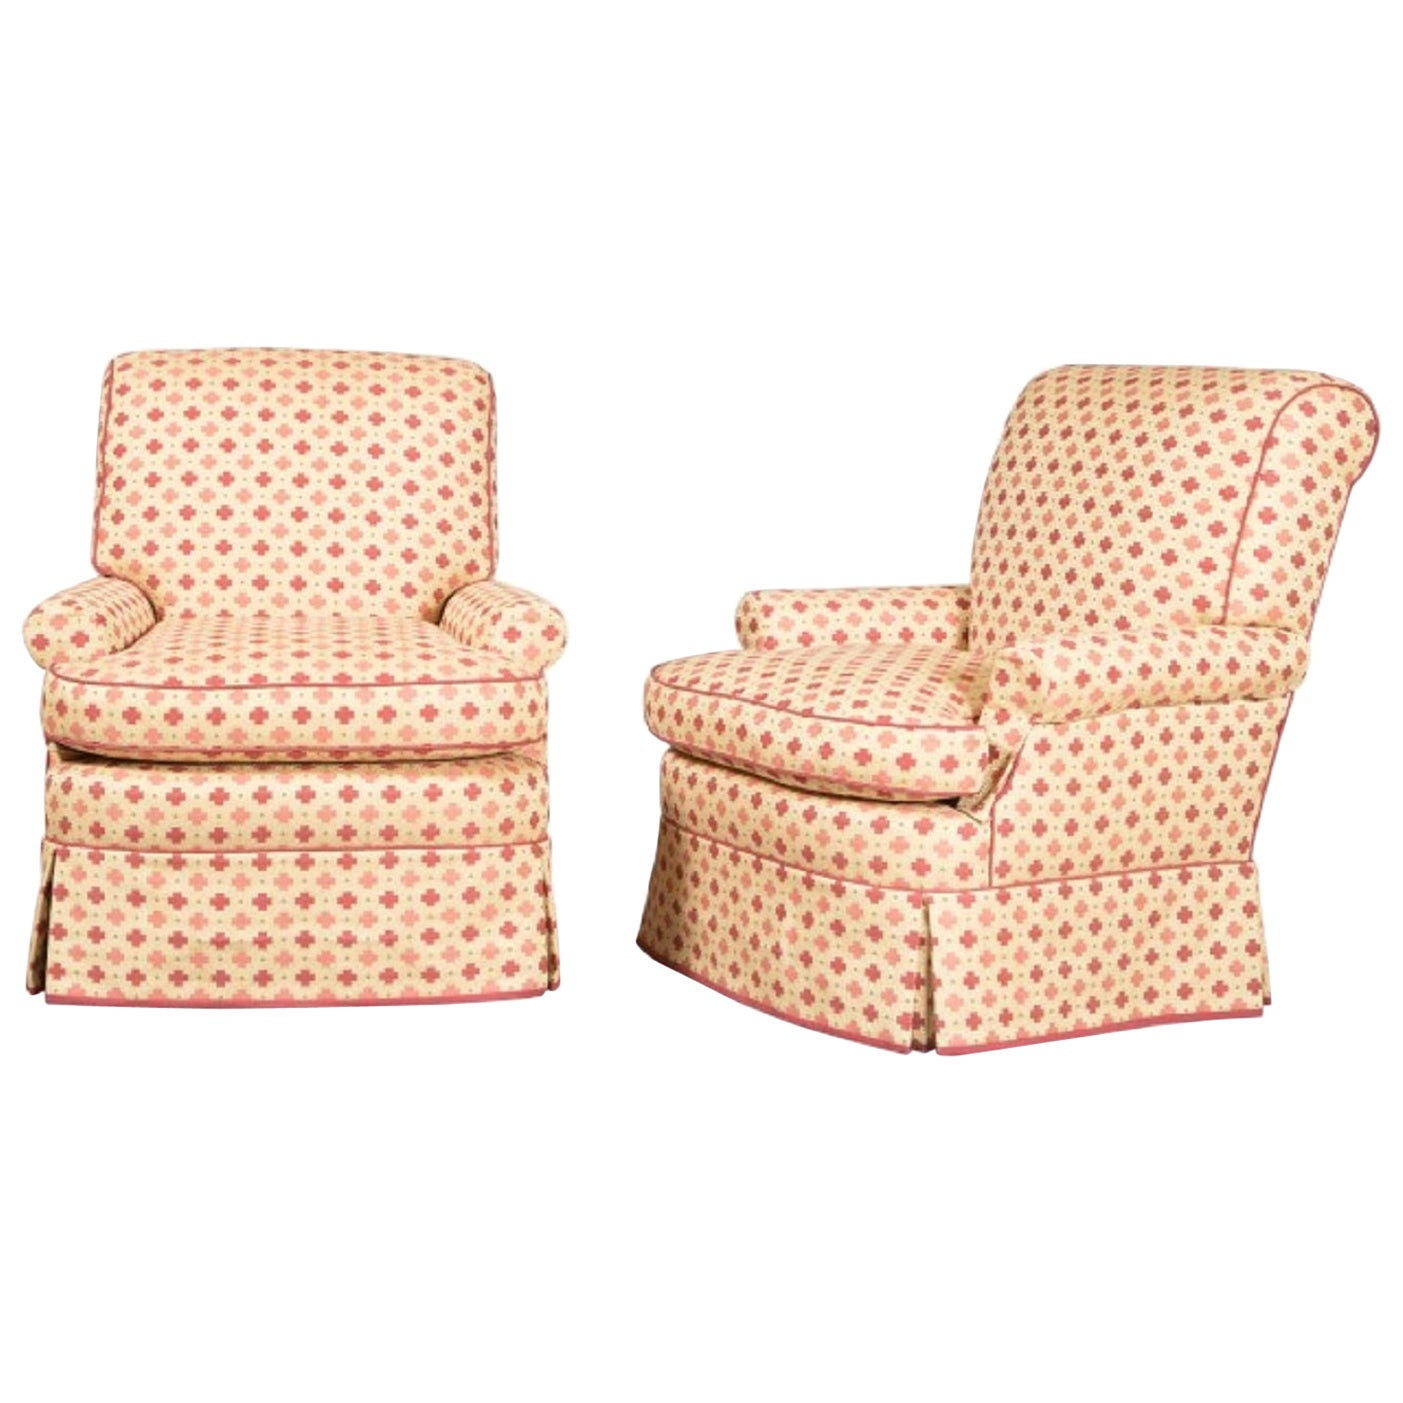 Pair of 1960s Decorative Upholstered Swivel Lounge Chairs